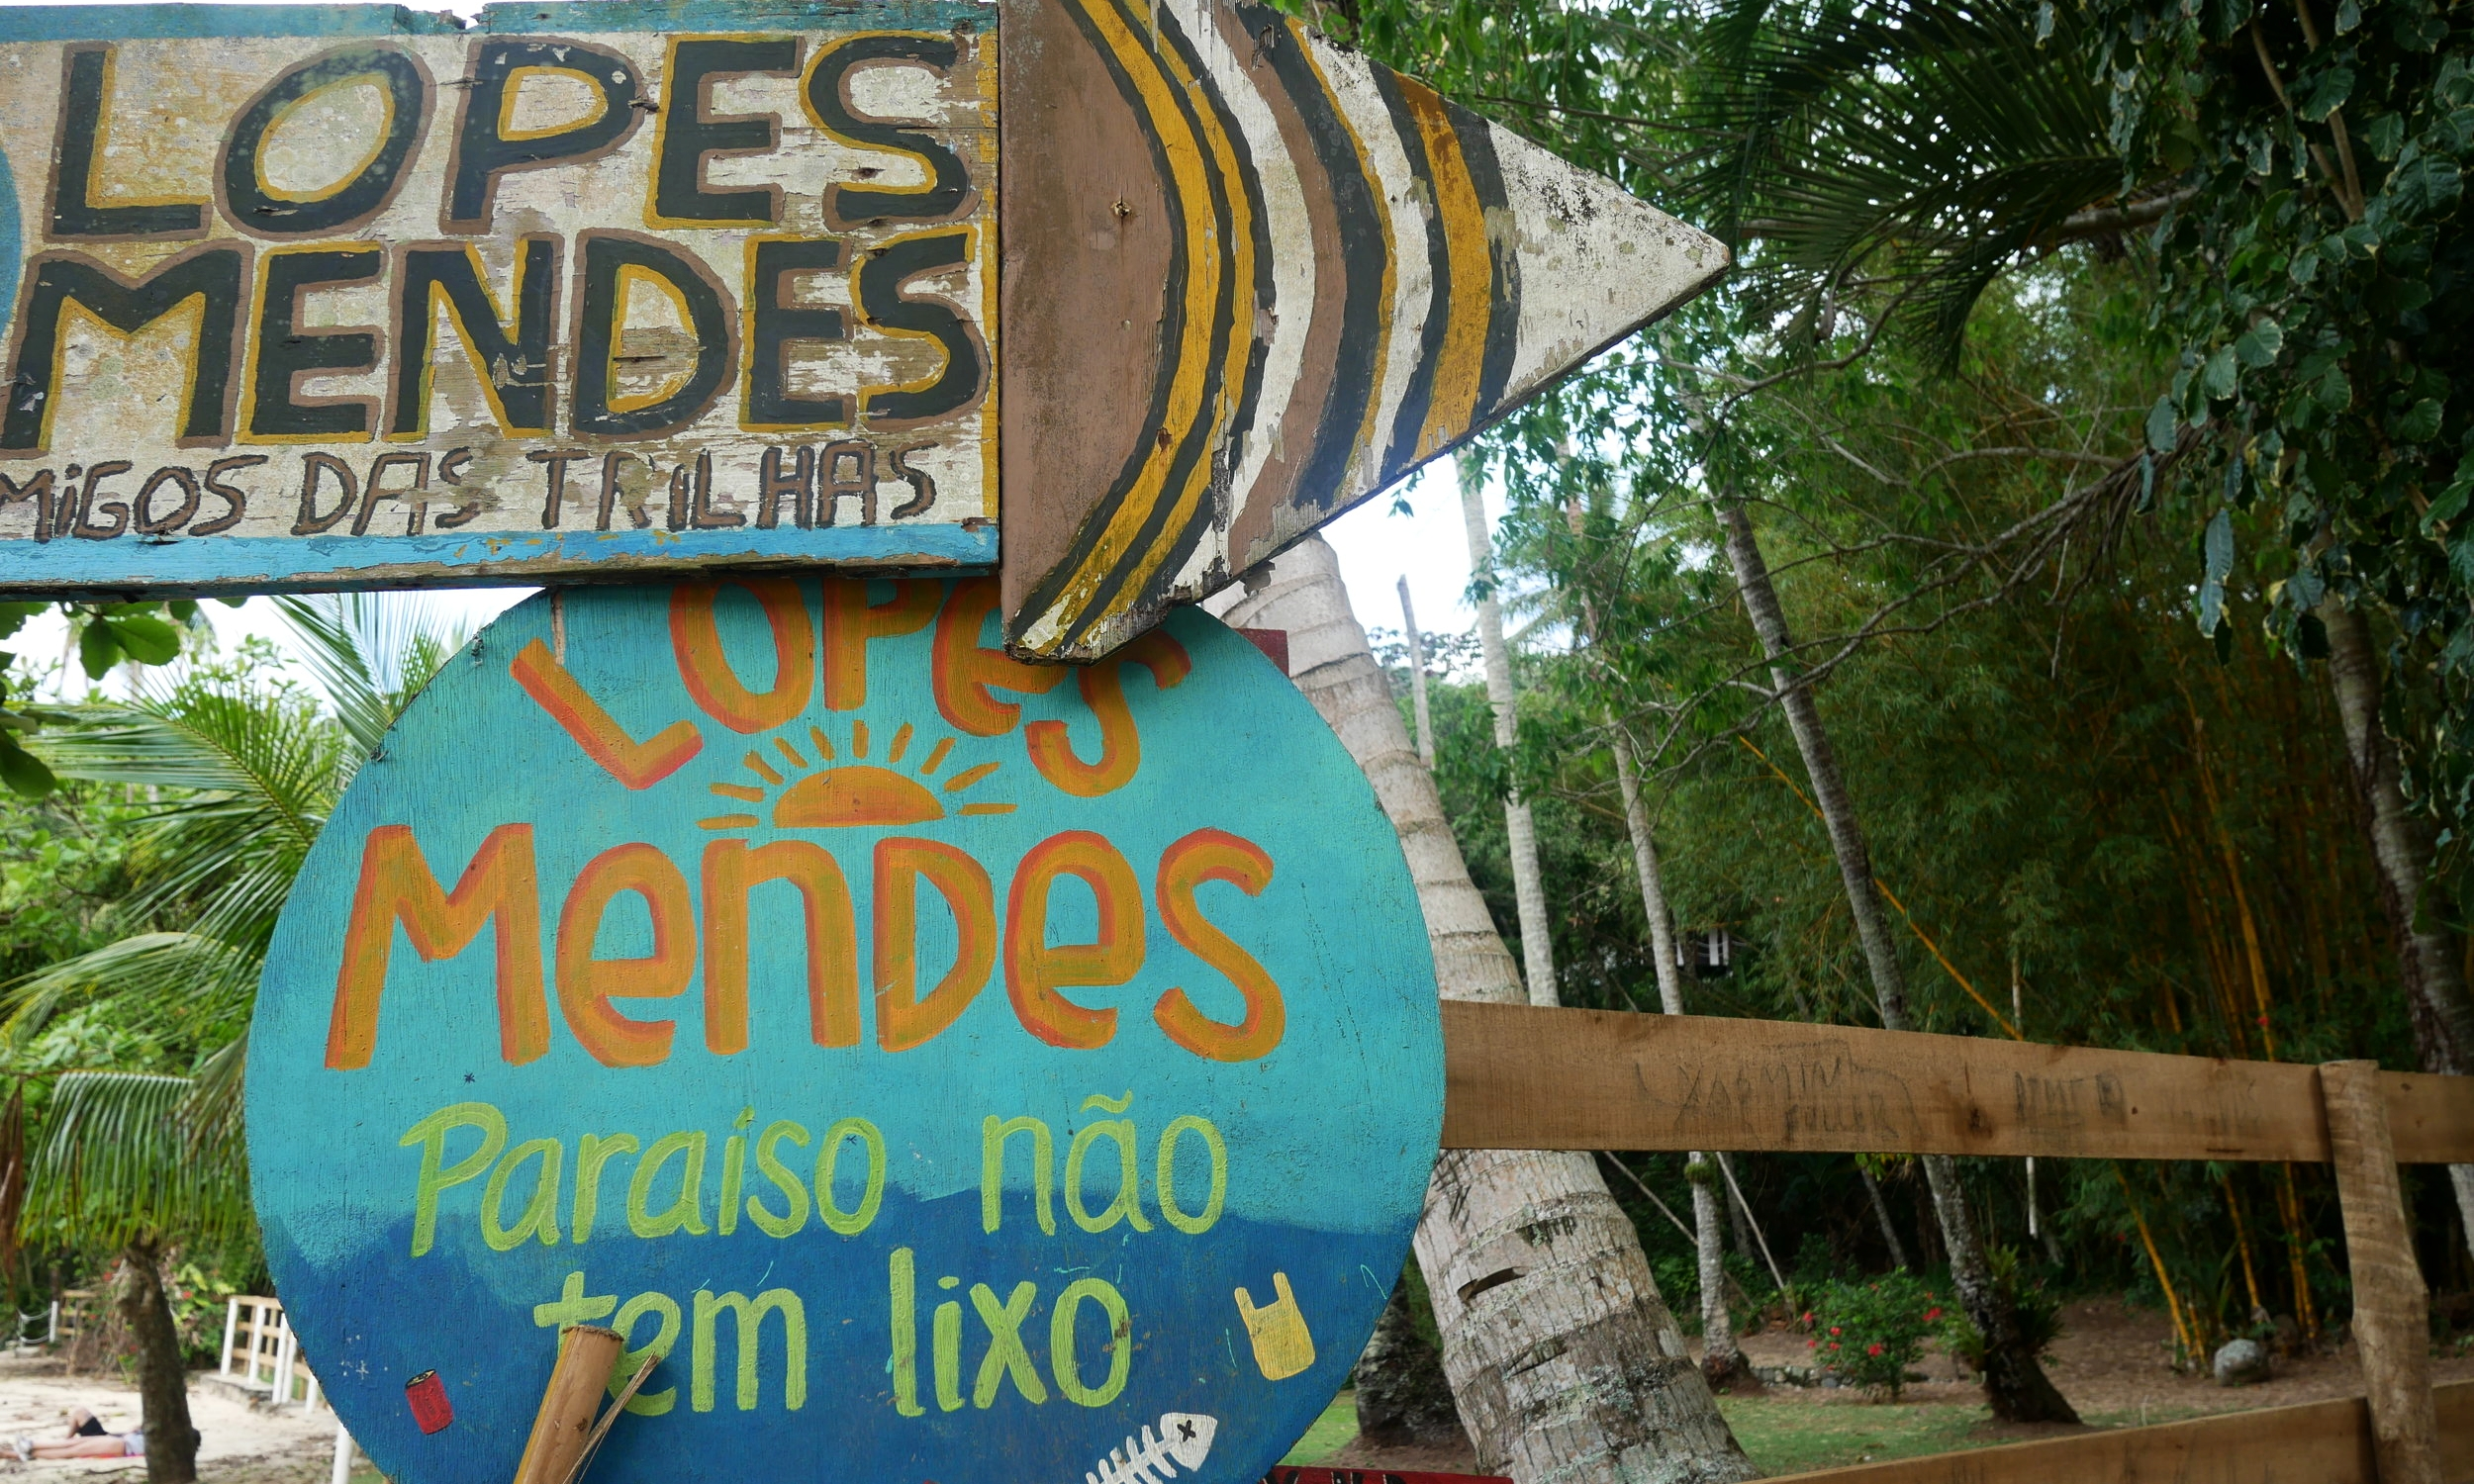 A sign directing us to Lopes Mendes. Only 20 more minutes of hiking to go!